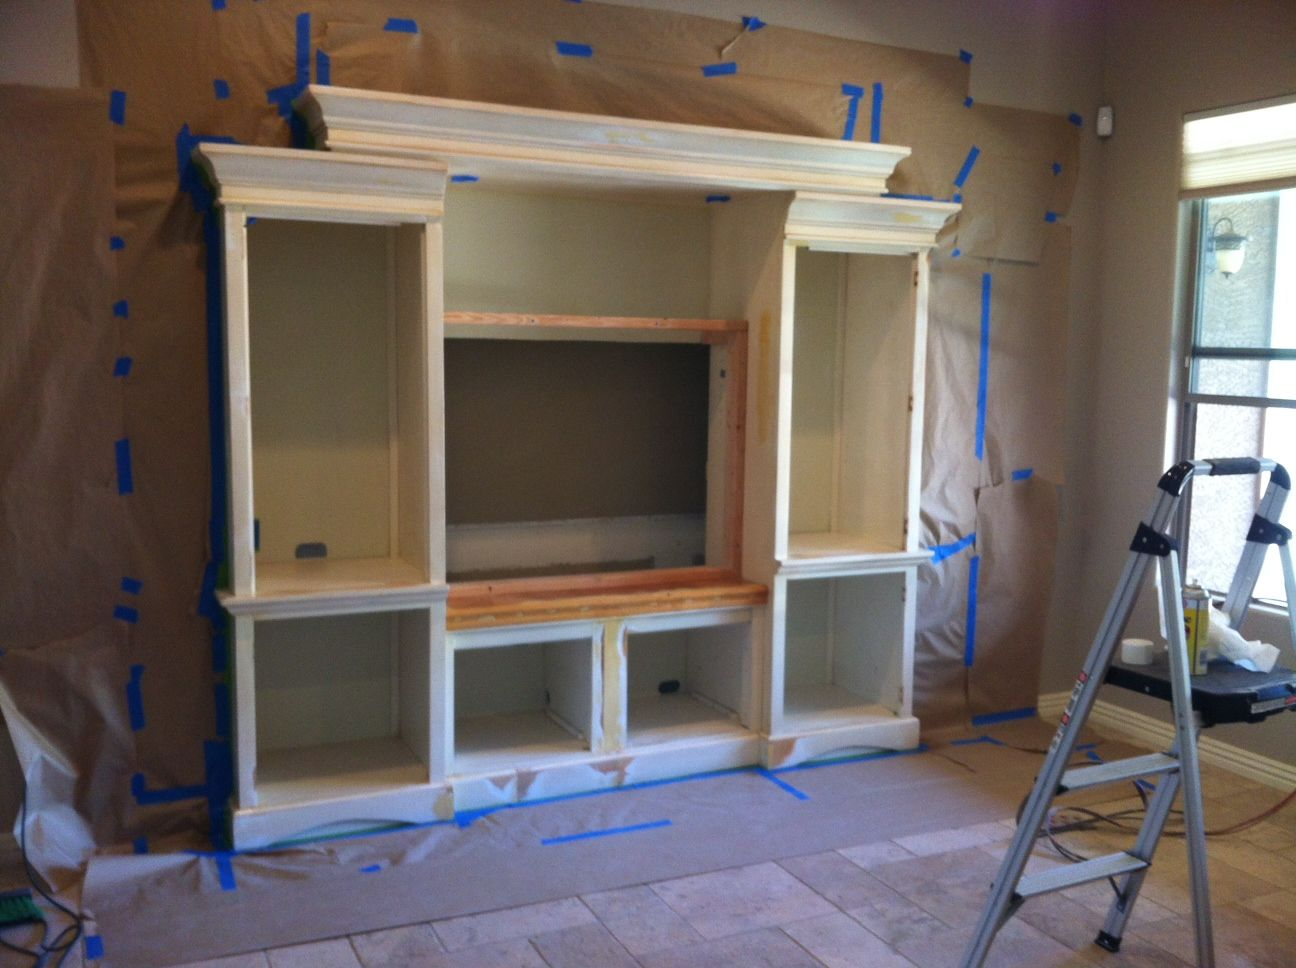 Adding A Custom Entertainment Center To A Standard Drywall